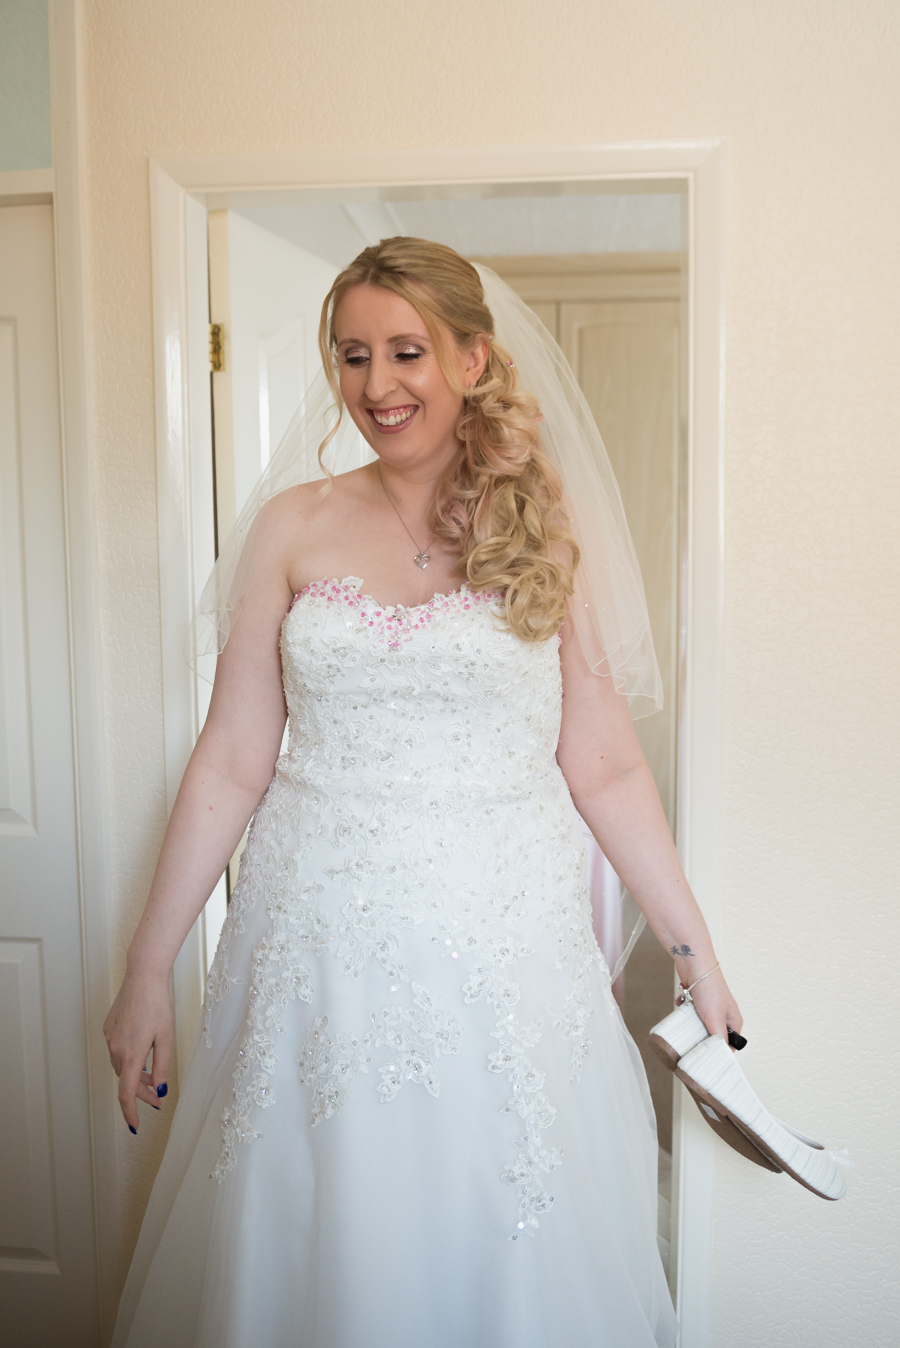 the bride ready for the wedding ceremony by coventry wedding photographer